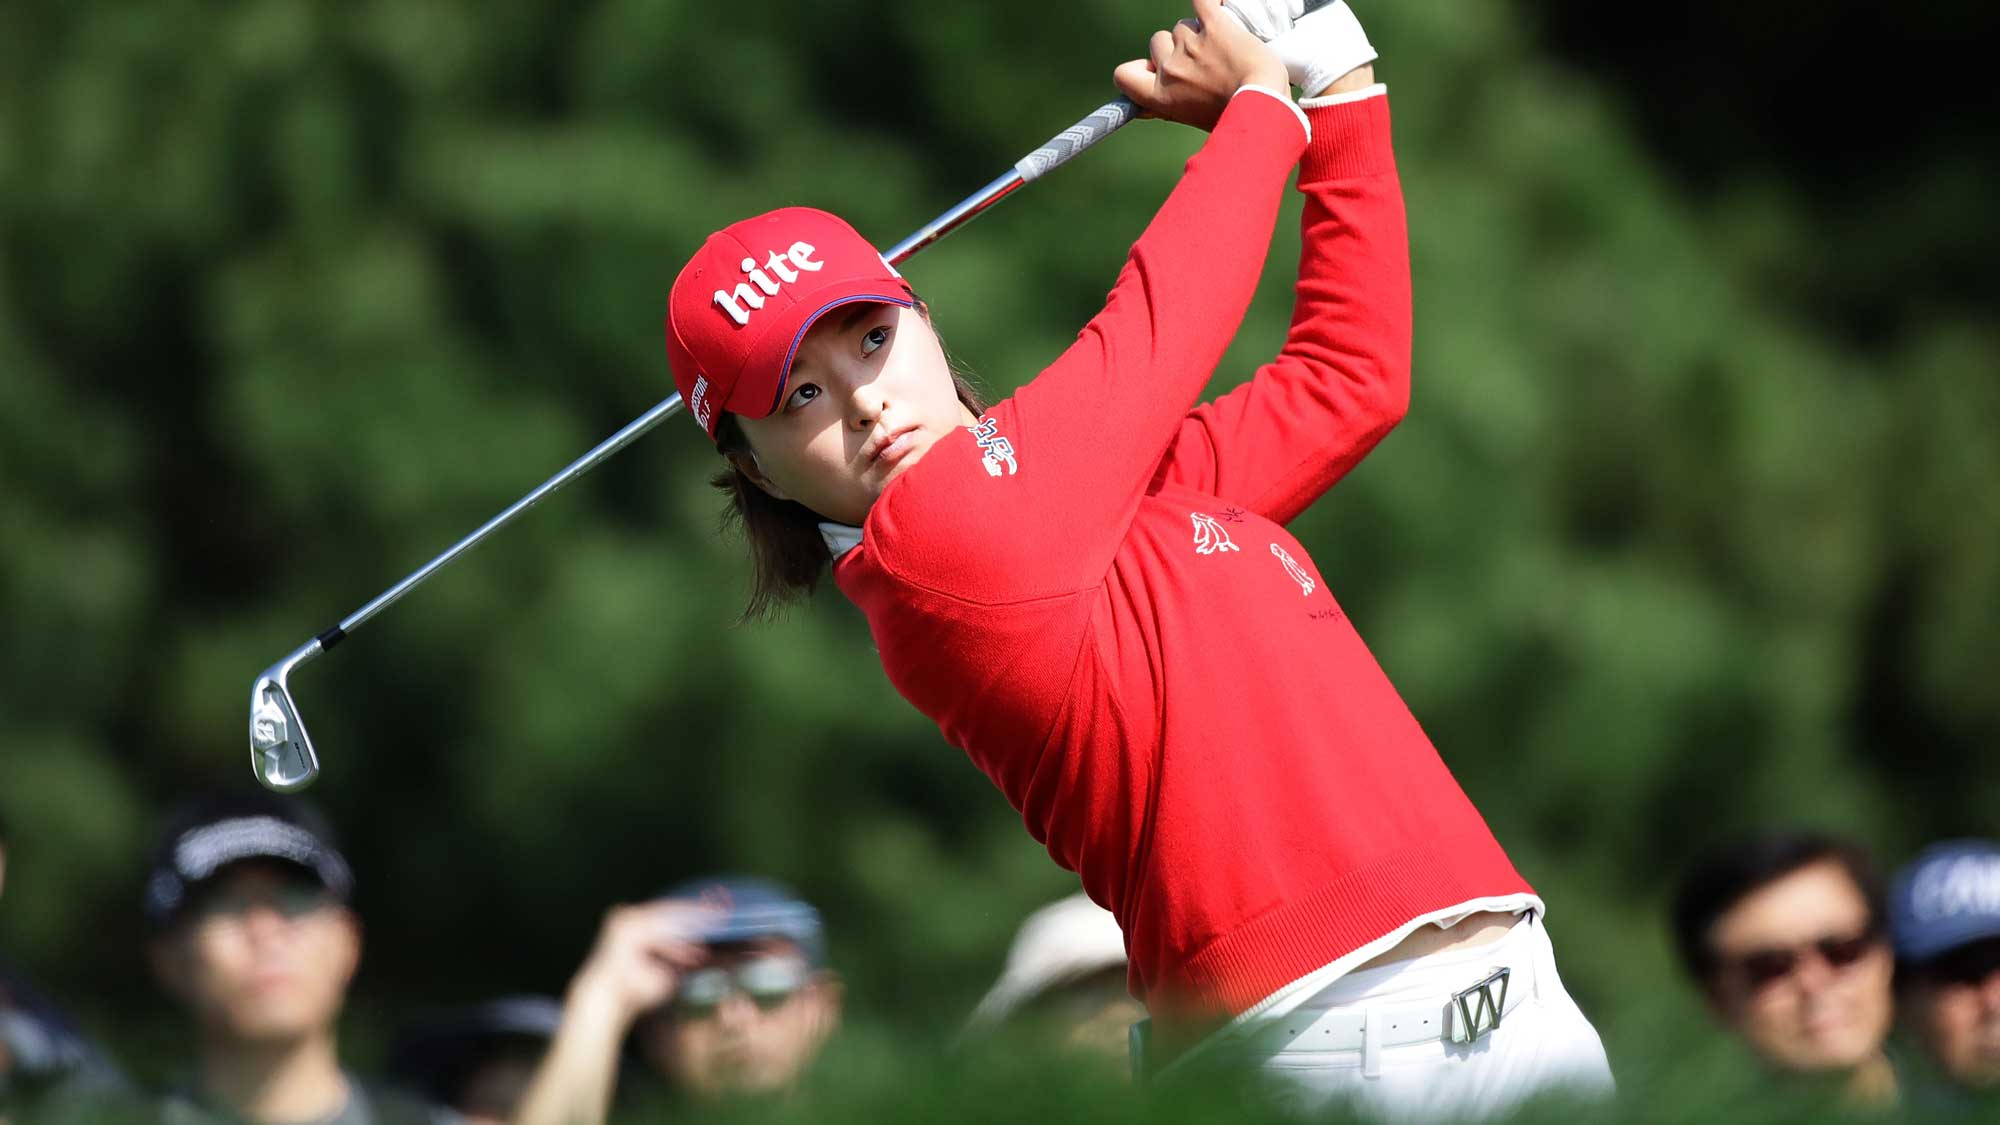 Jin-Young Ko of South Korea plays a tee shot on the 2nd hole during the third round of the LPGA KEB Hana Bank Championship